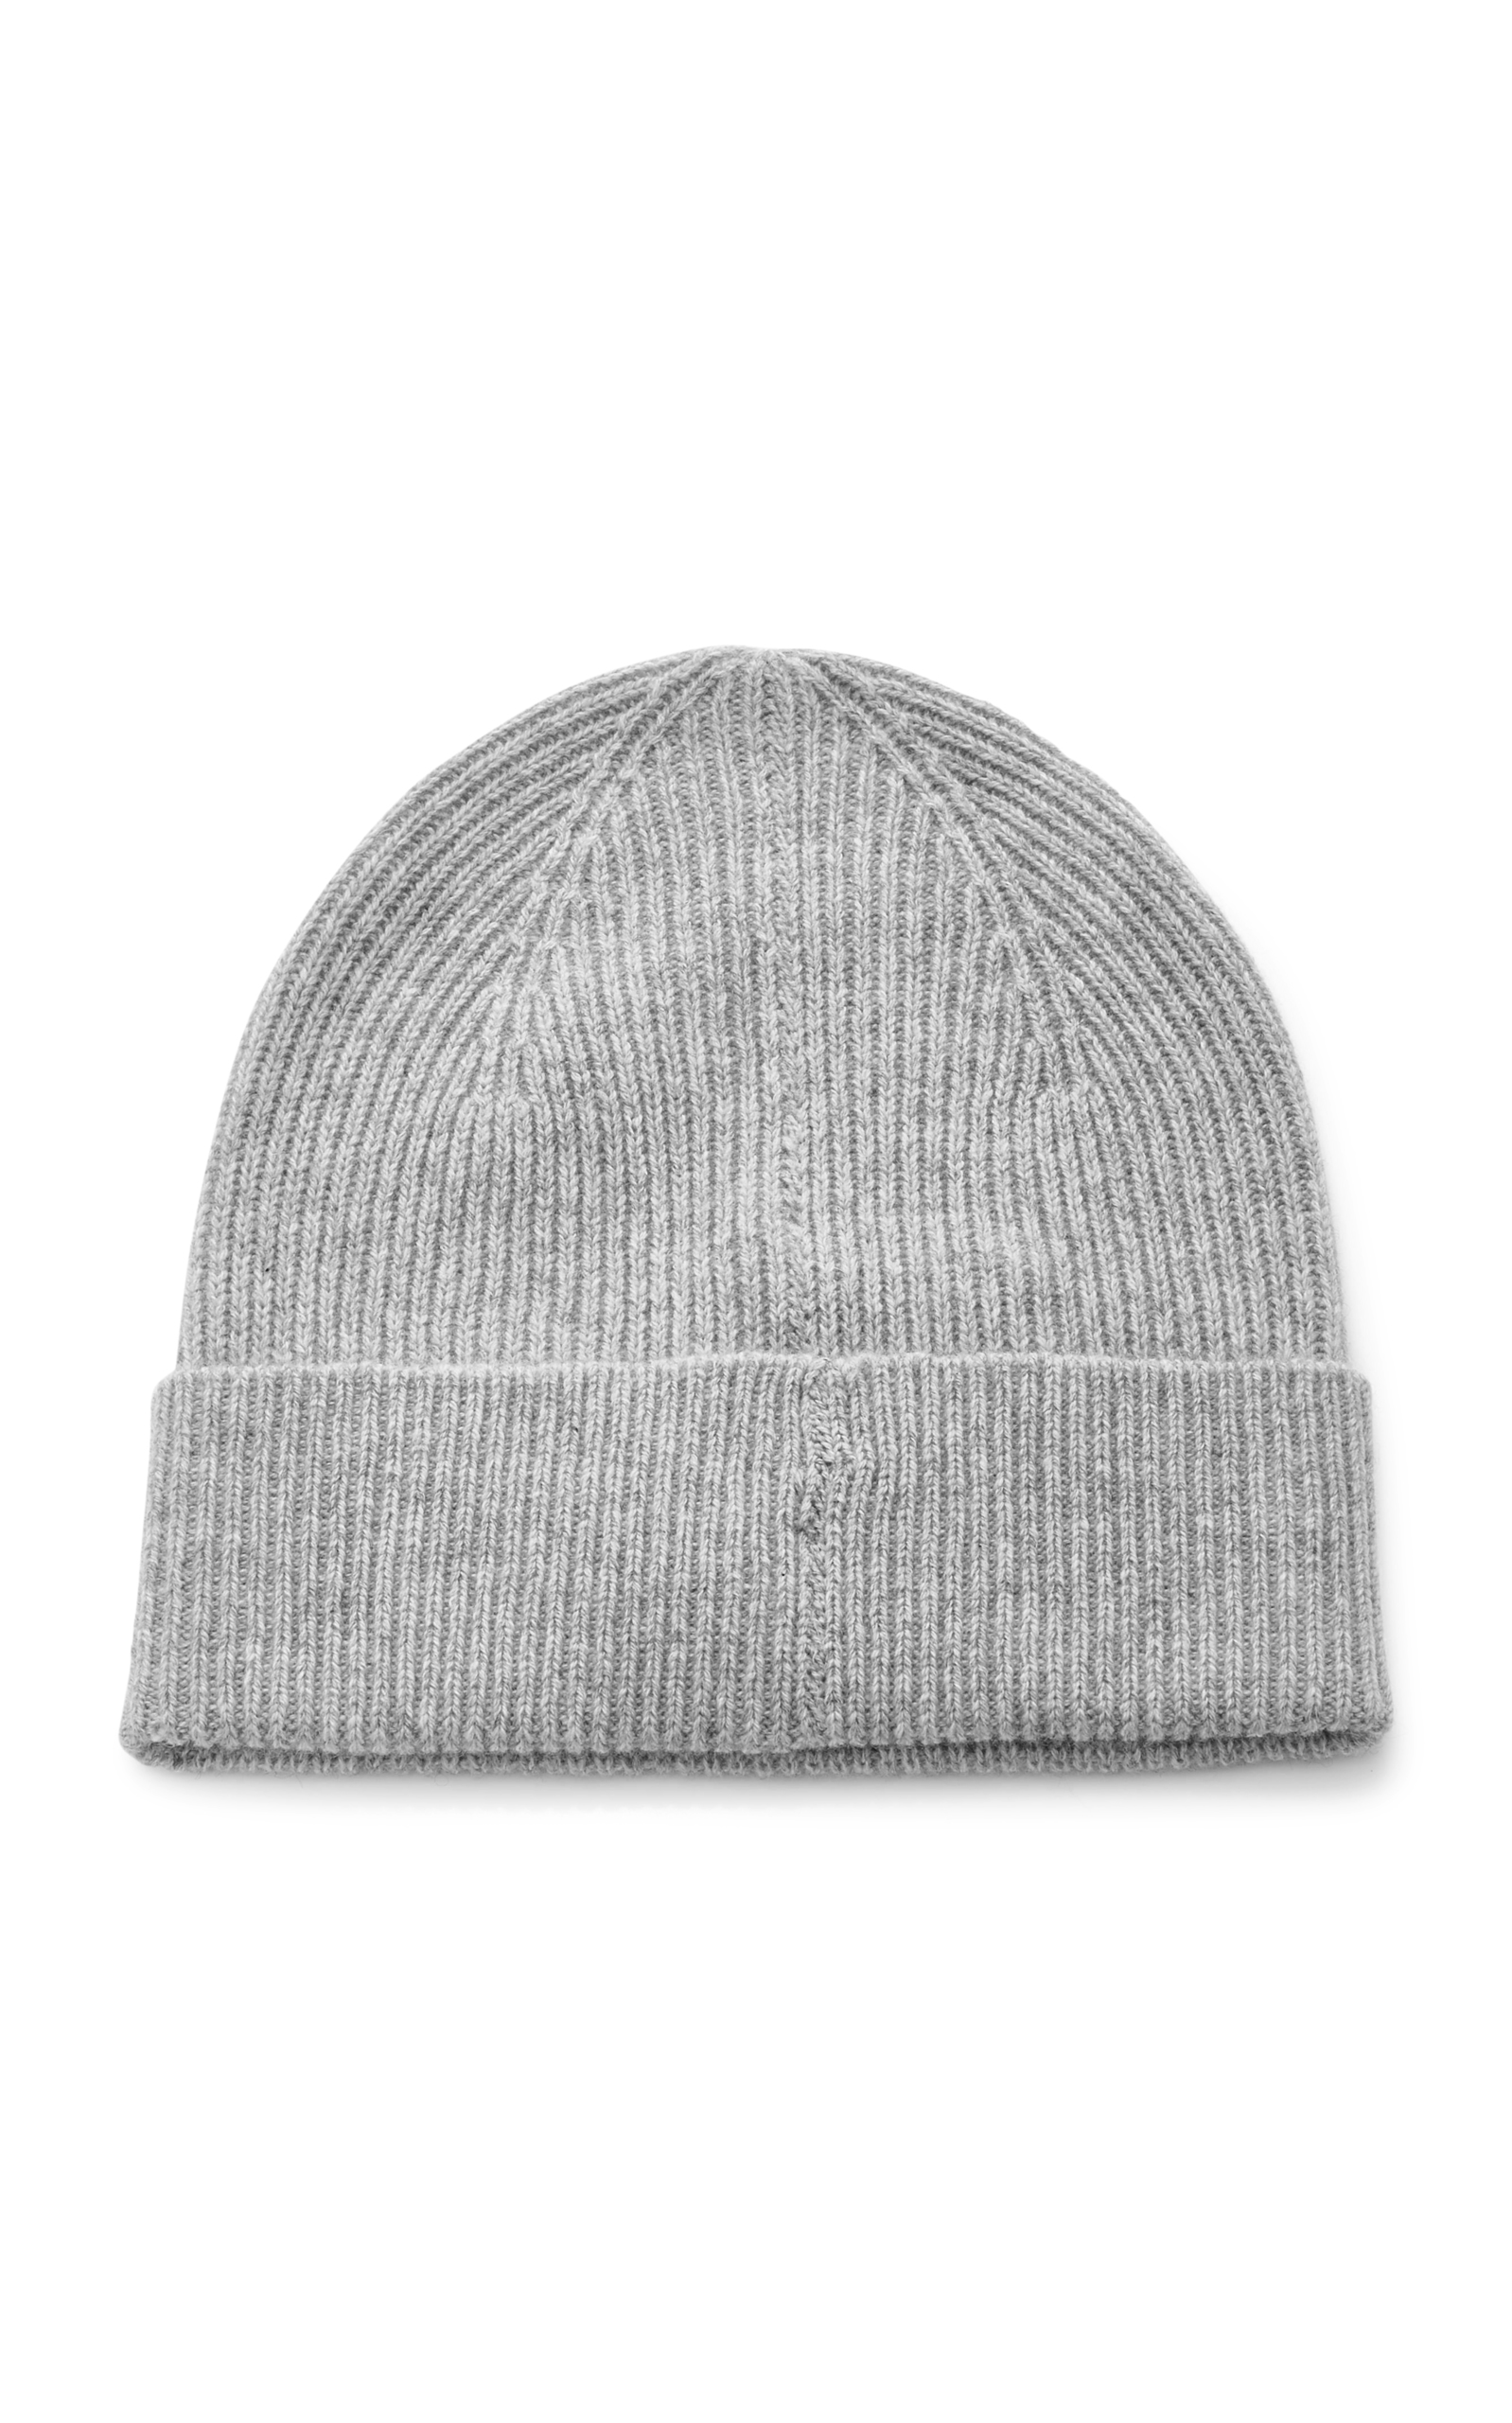 Chilton Ribbed Cashmere Beanie by Isabel Marant  46a752abc34